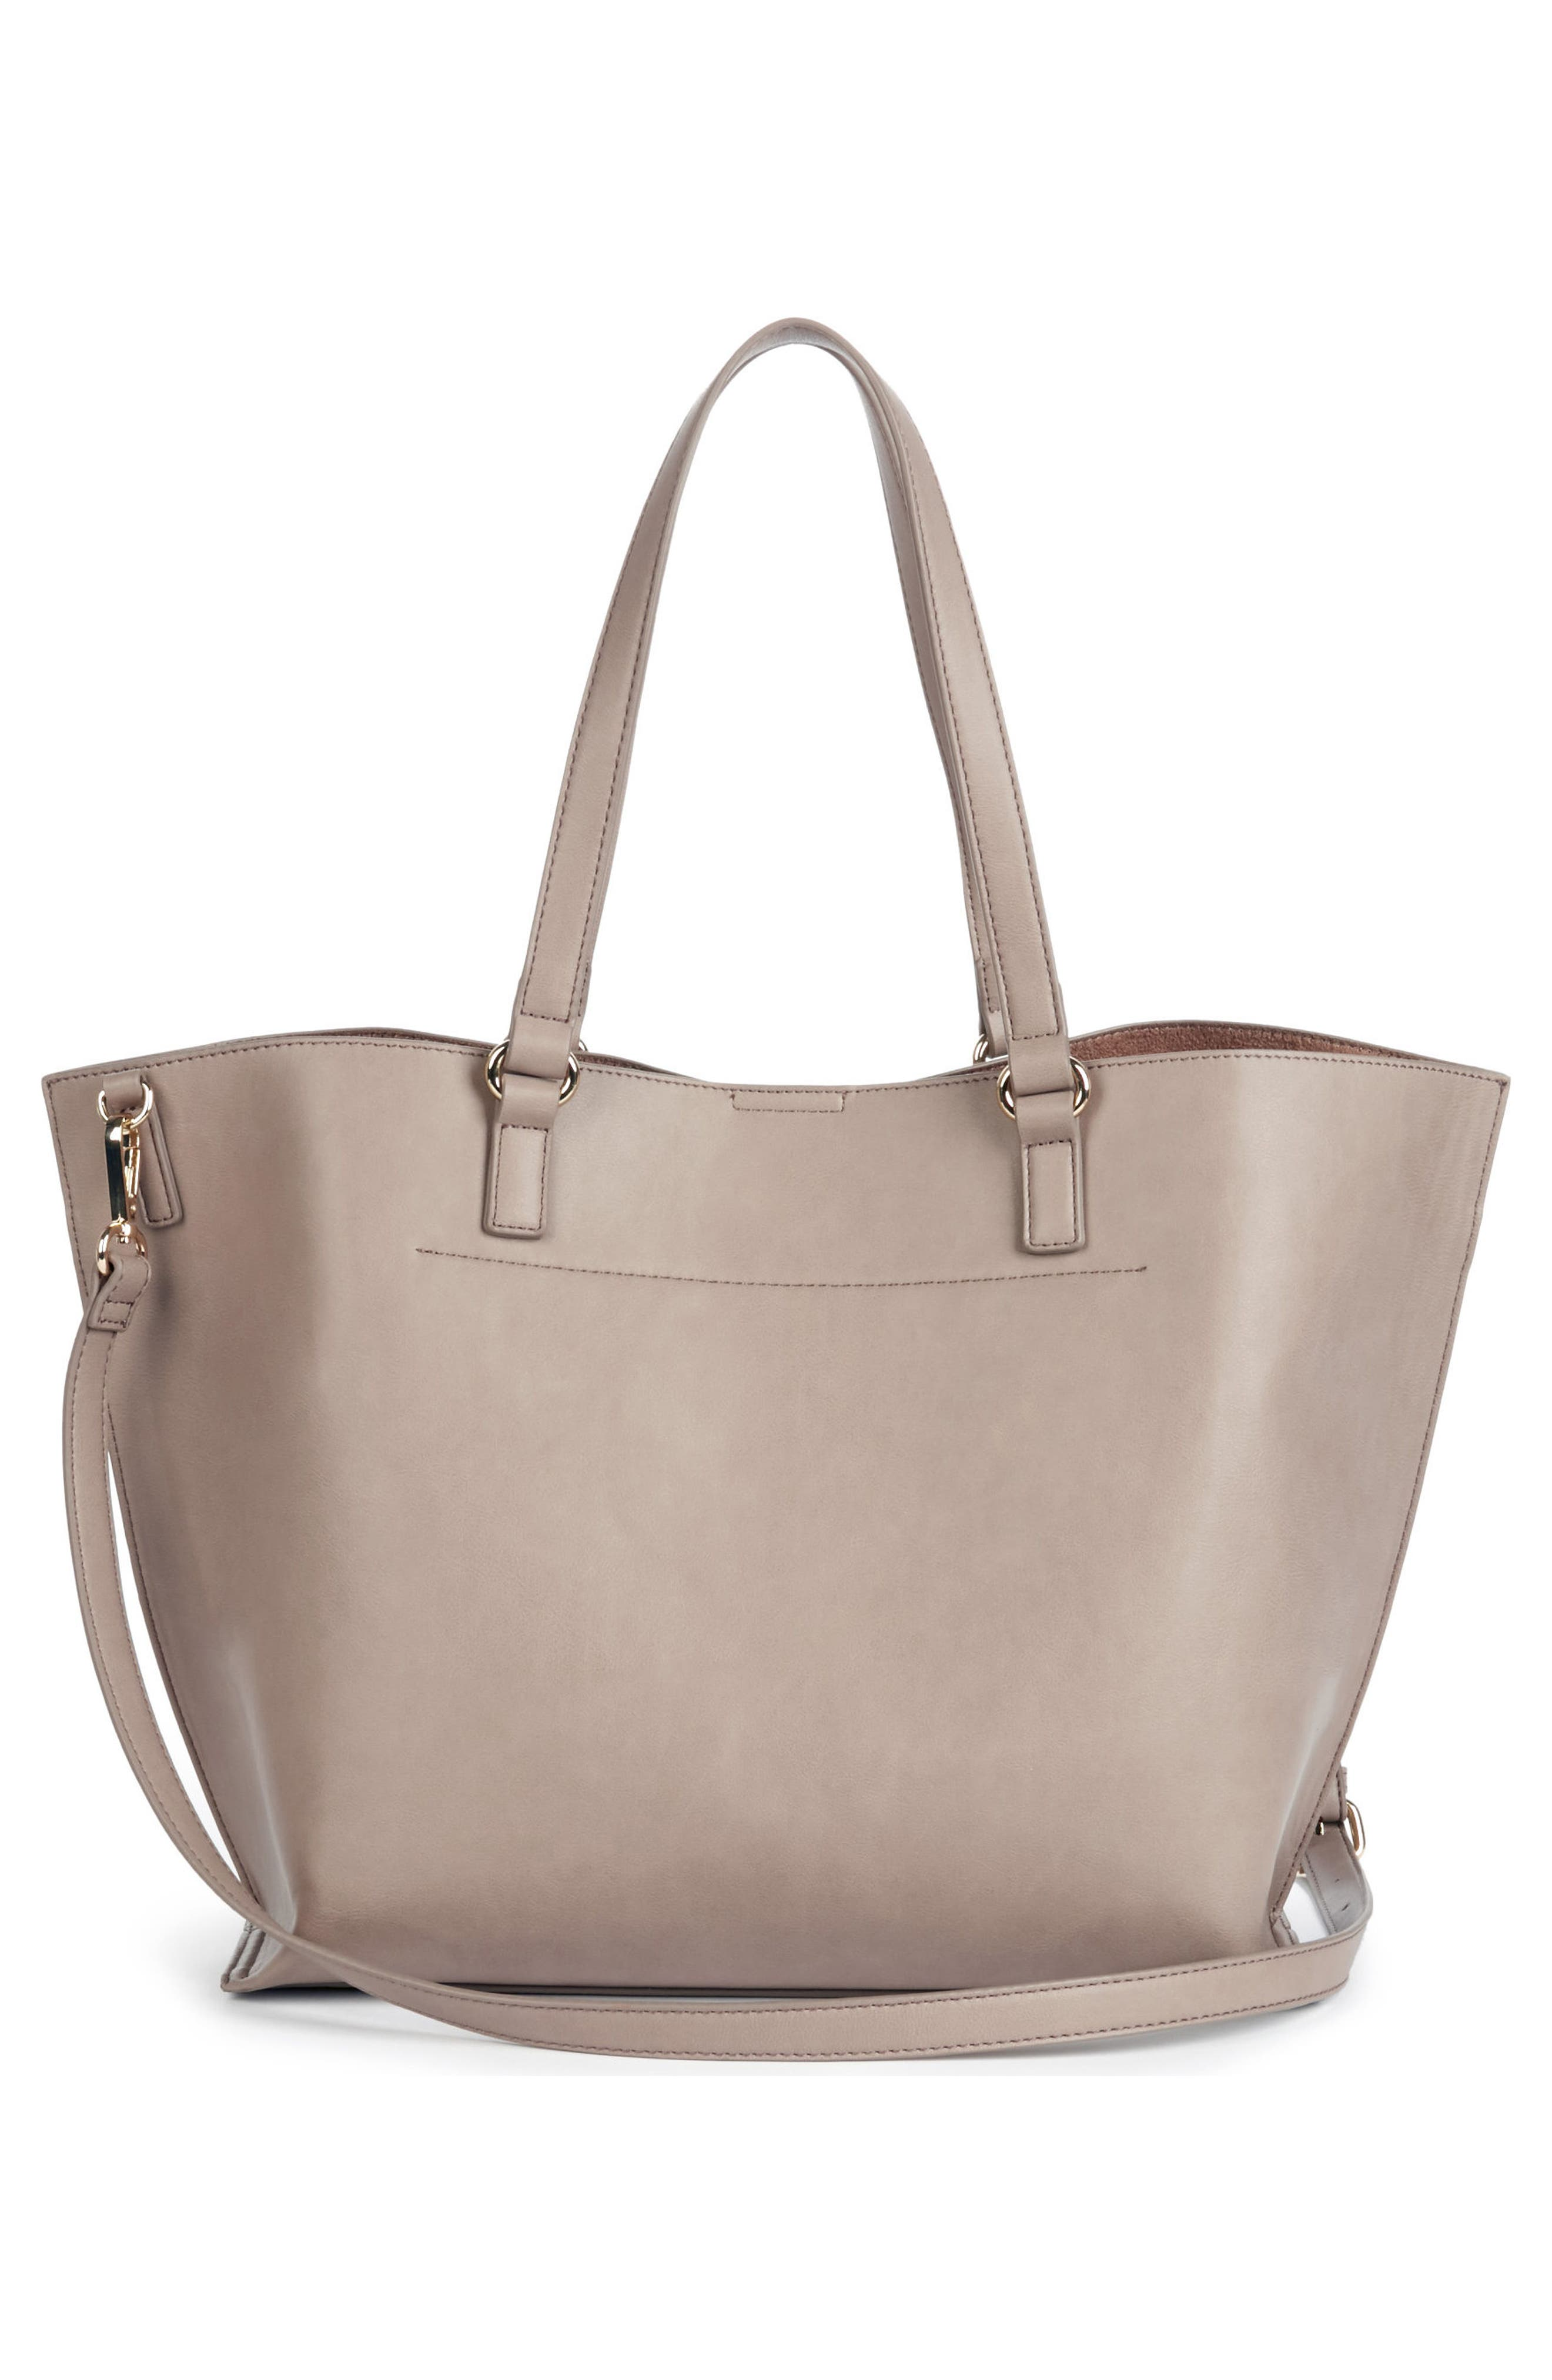 Adelina Ruffled Faux Leather Tote,                             Alternate thumbnail 3, color,                             Taupe